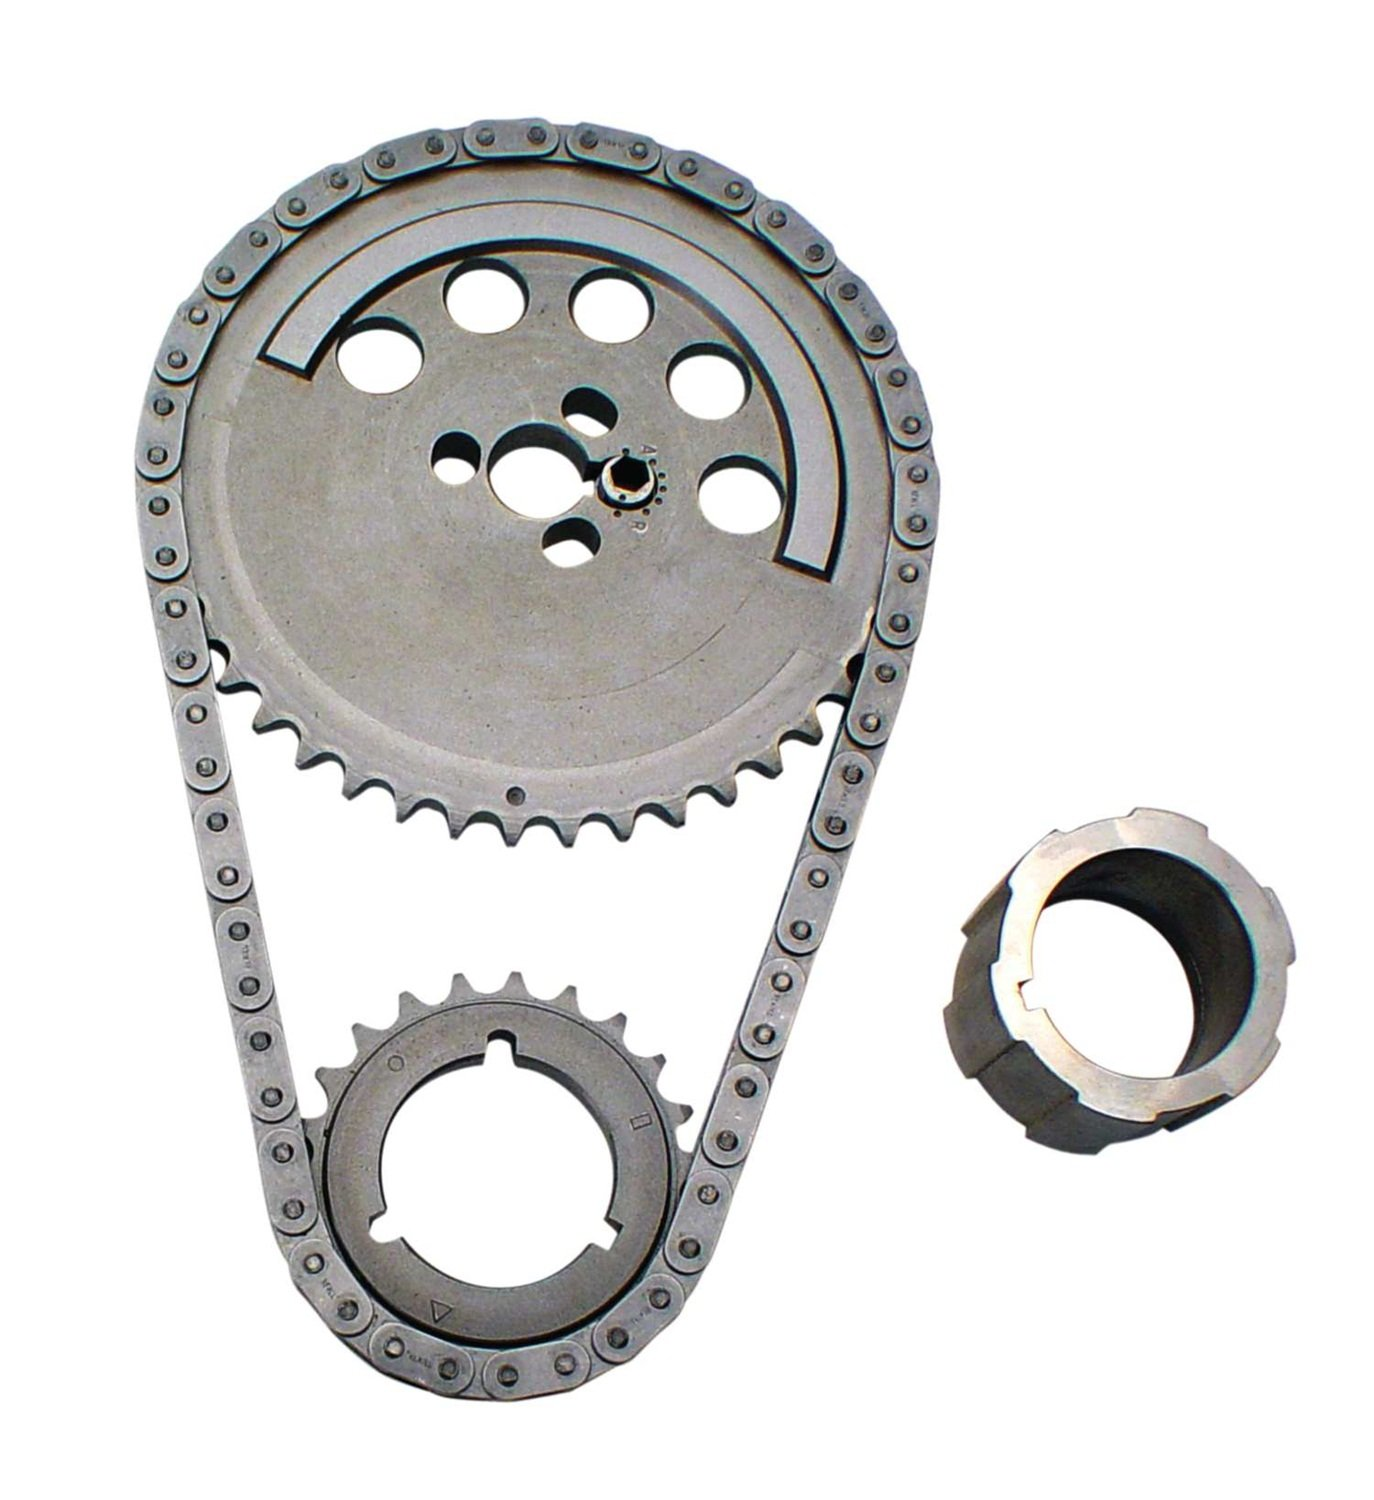 Competition Cams 3158KT Adjustable Timing Set for GM LS Engines, 3-Bolt Cam Gear, 1 Pole Reluctor